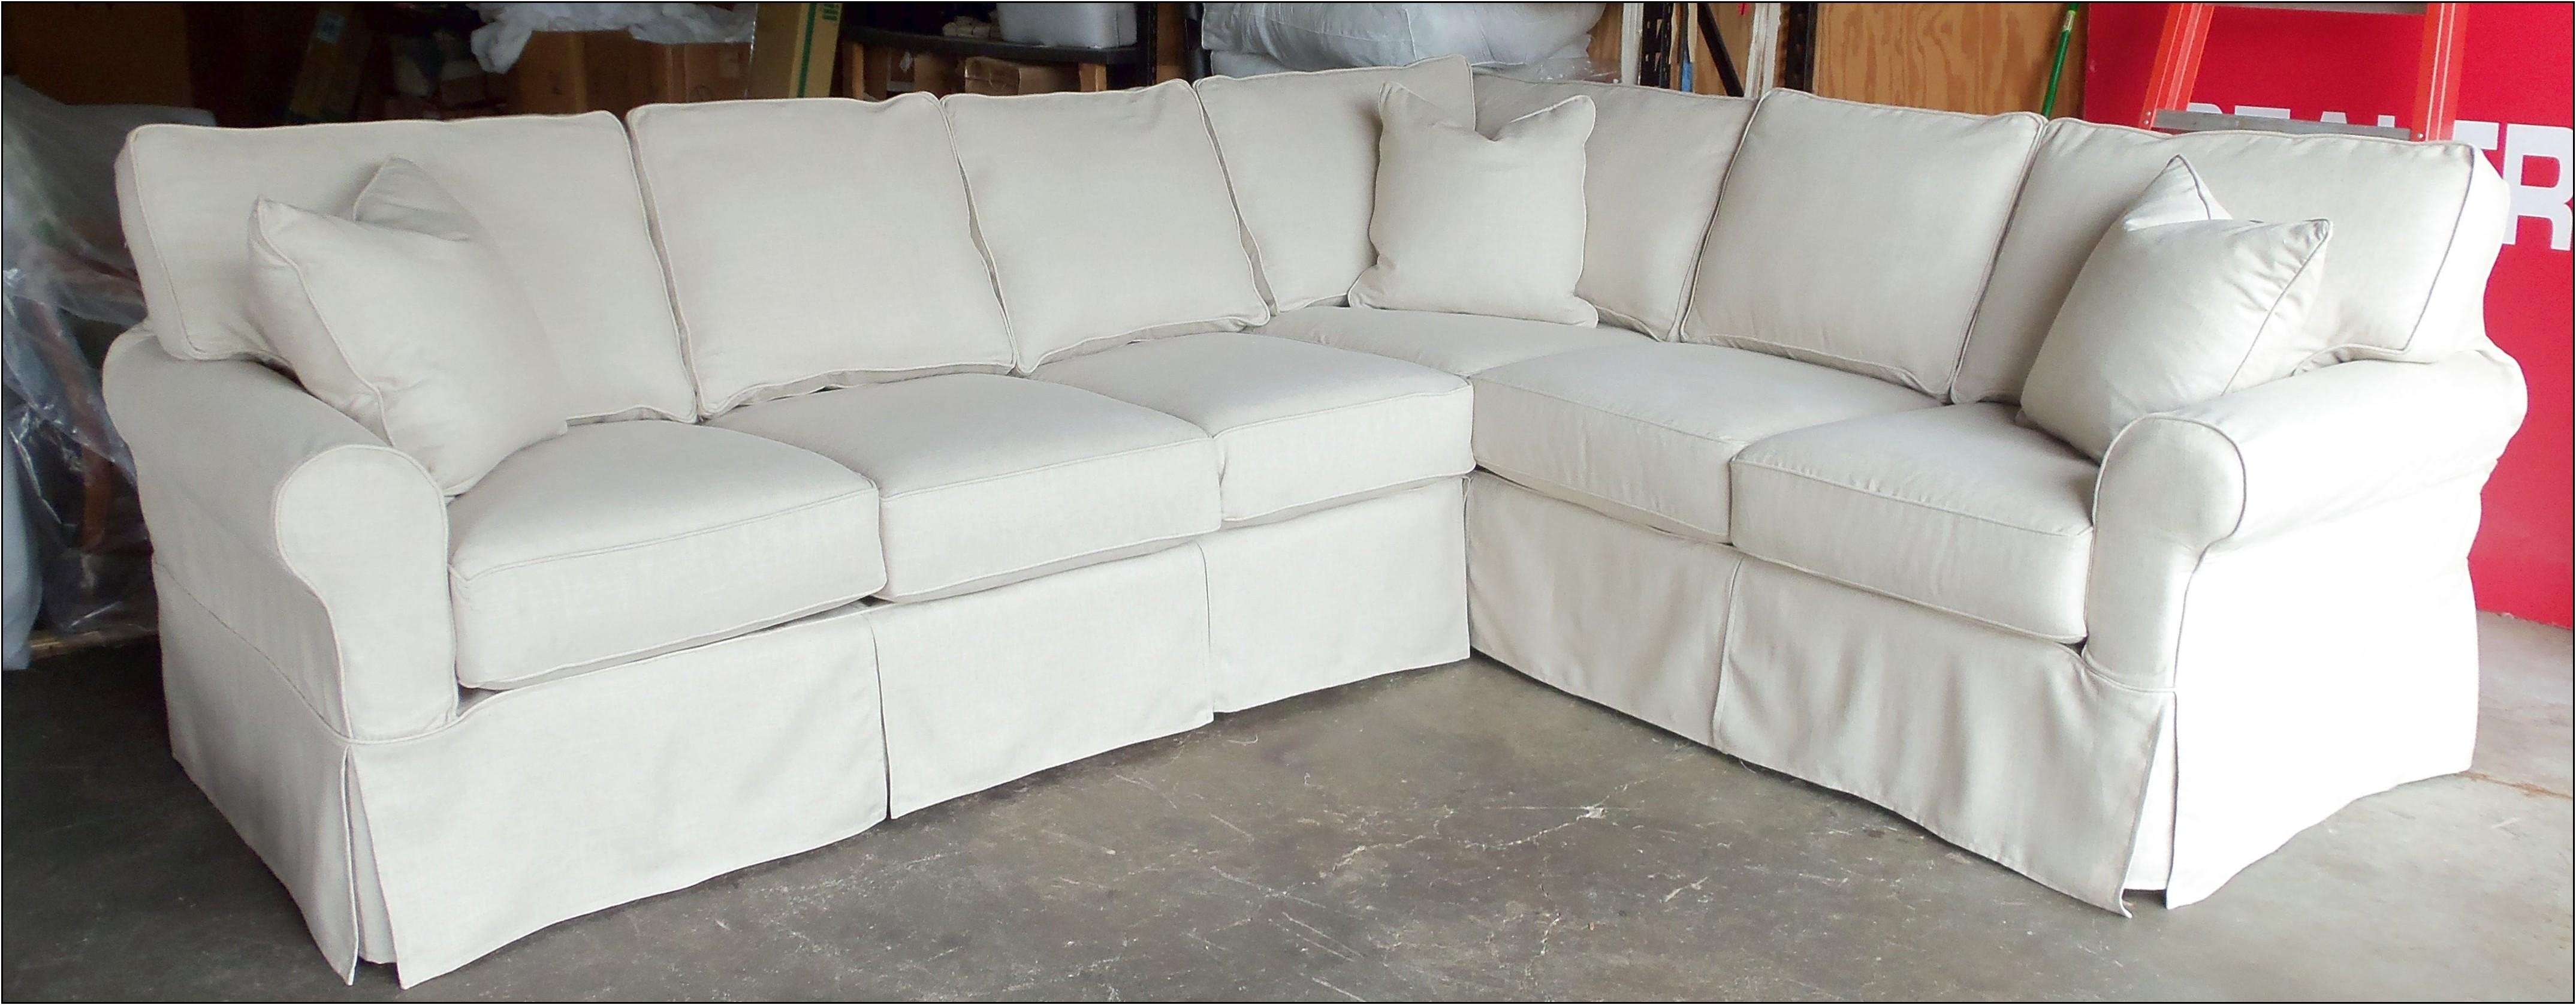 Furniture: Couch Covers At Walmart To Make Your Furniture Stylish With Slipcovers For Sofas And Chairs (View 12 of 20)